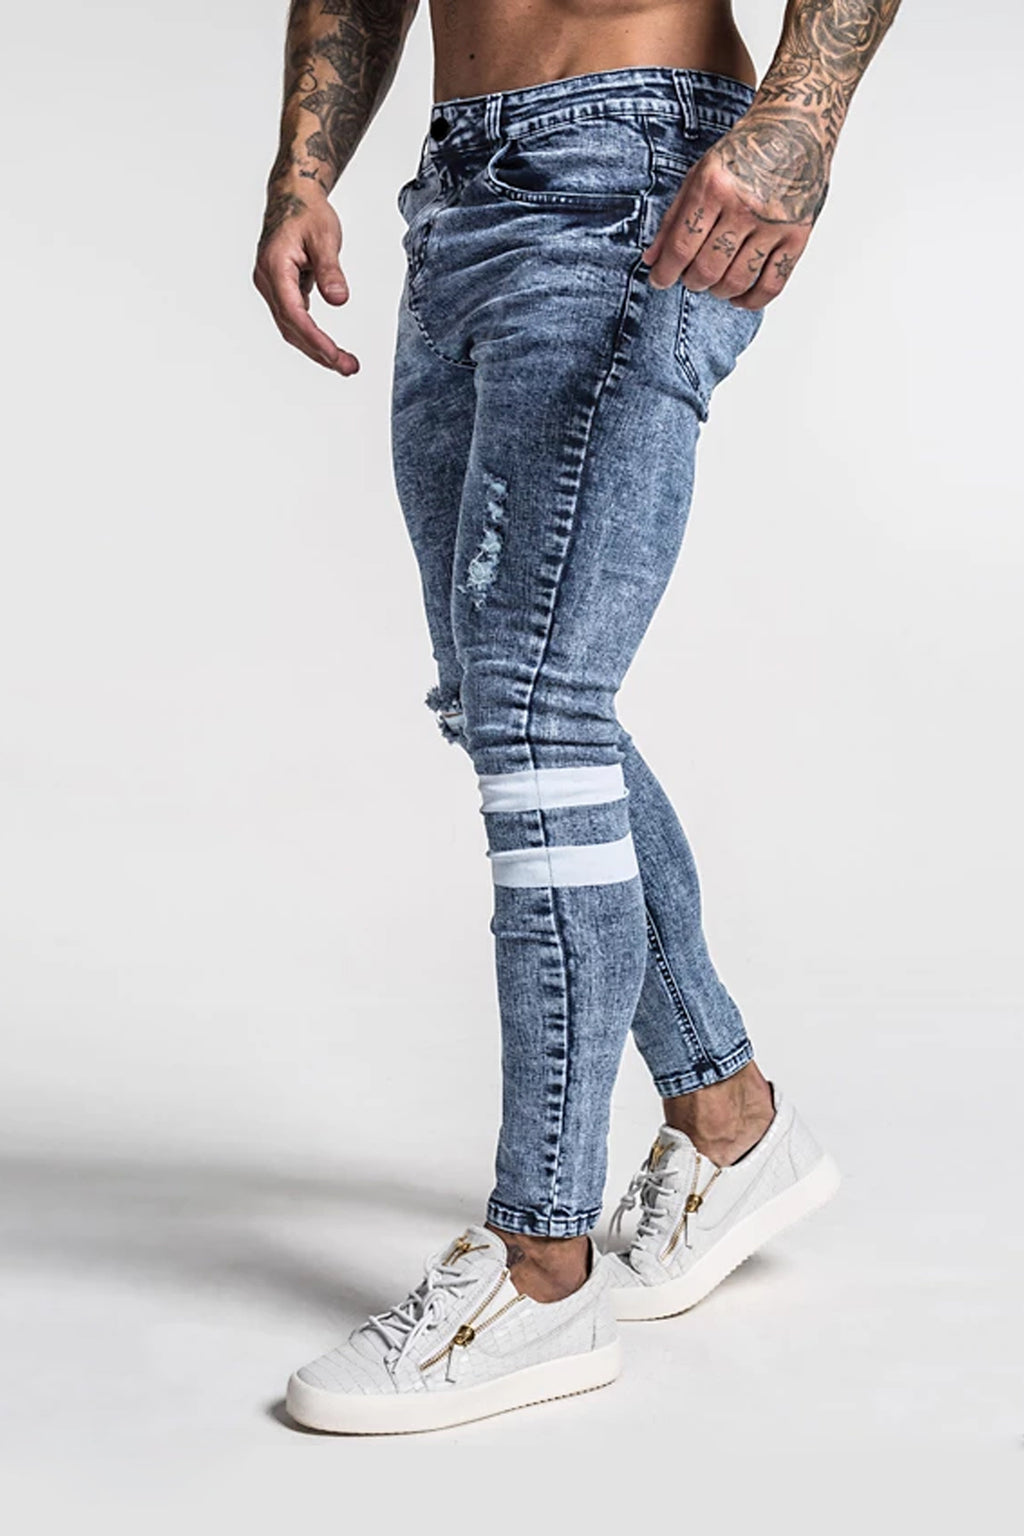 Repaired Spray on Jeans - Blue / White Stripes - SVPPLY. STUDIOS